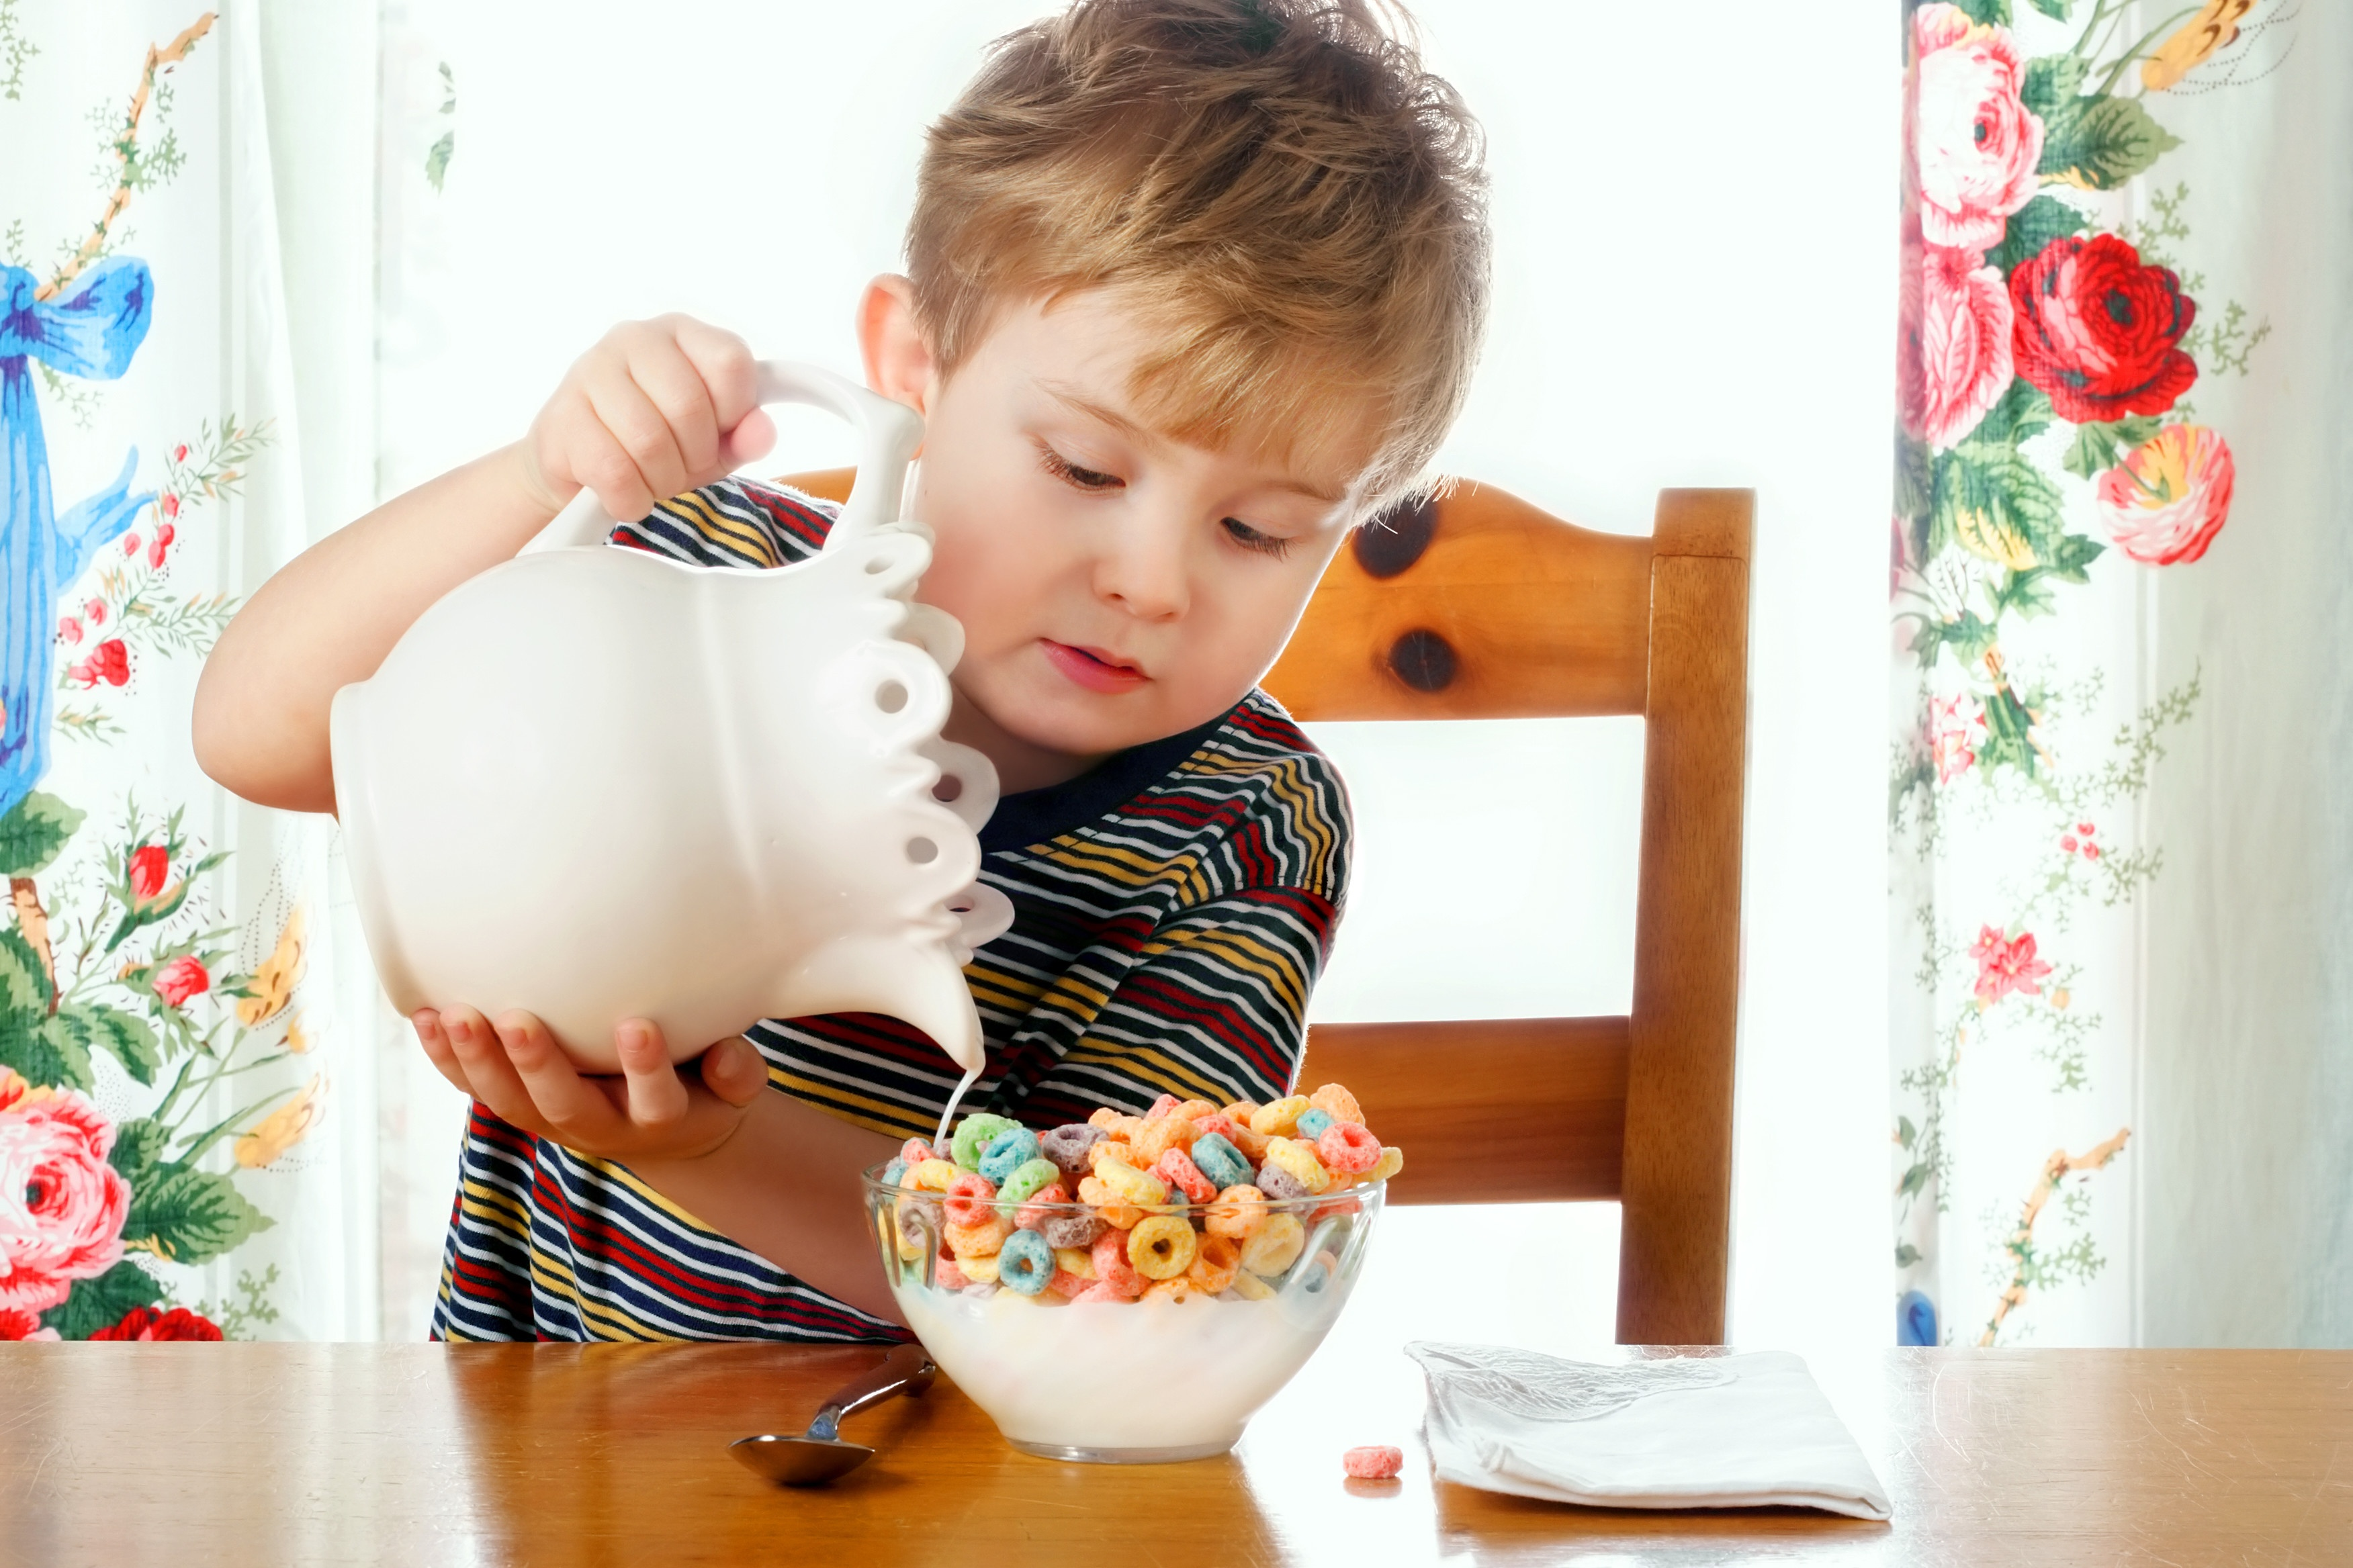 Boy pouring cereal into milk